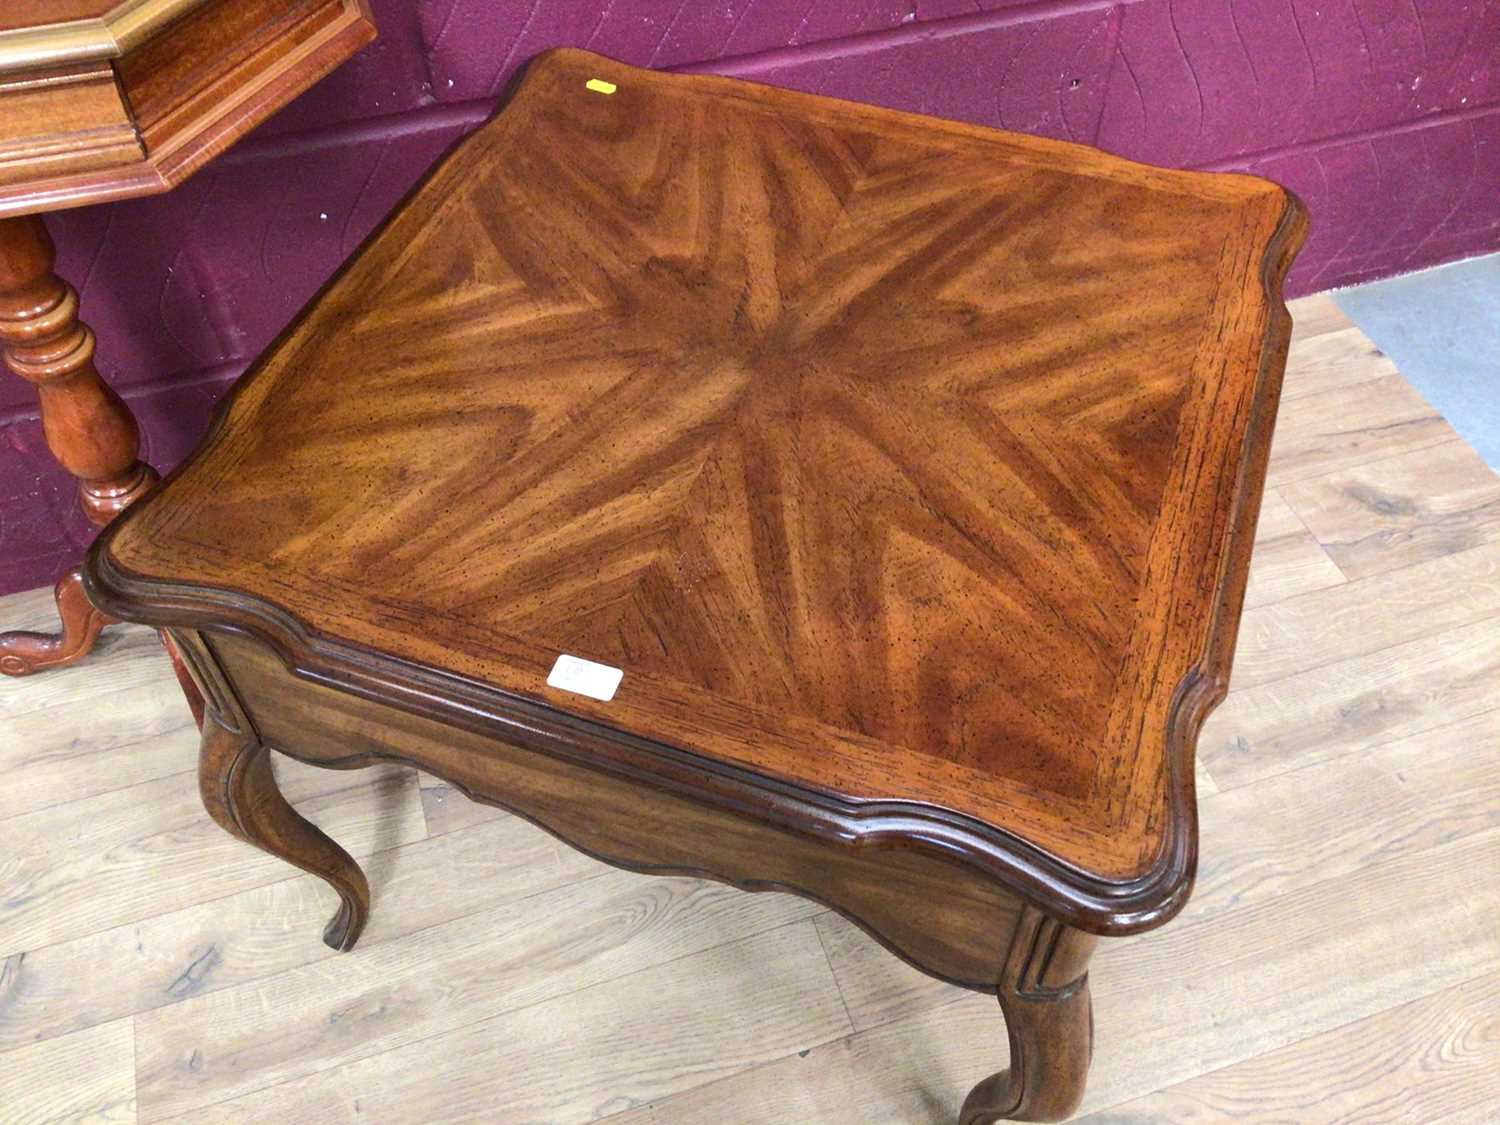 Italian inlaid marquetry table, low coffee table of square form with draw and a mirror (3) - Image 4 of 5